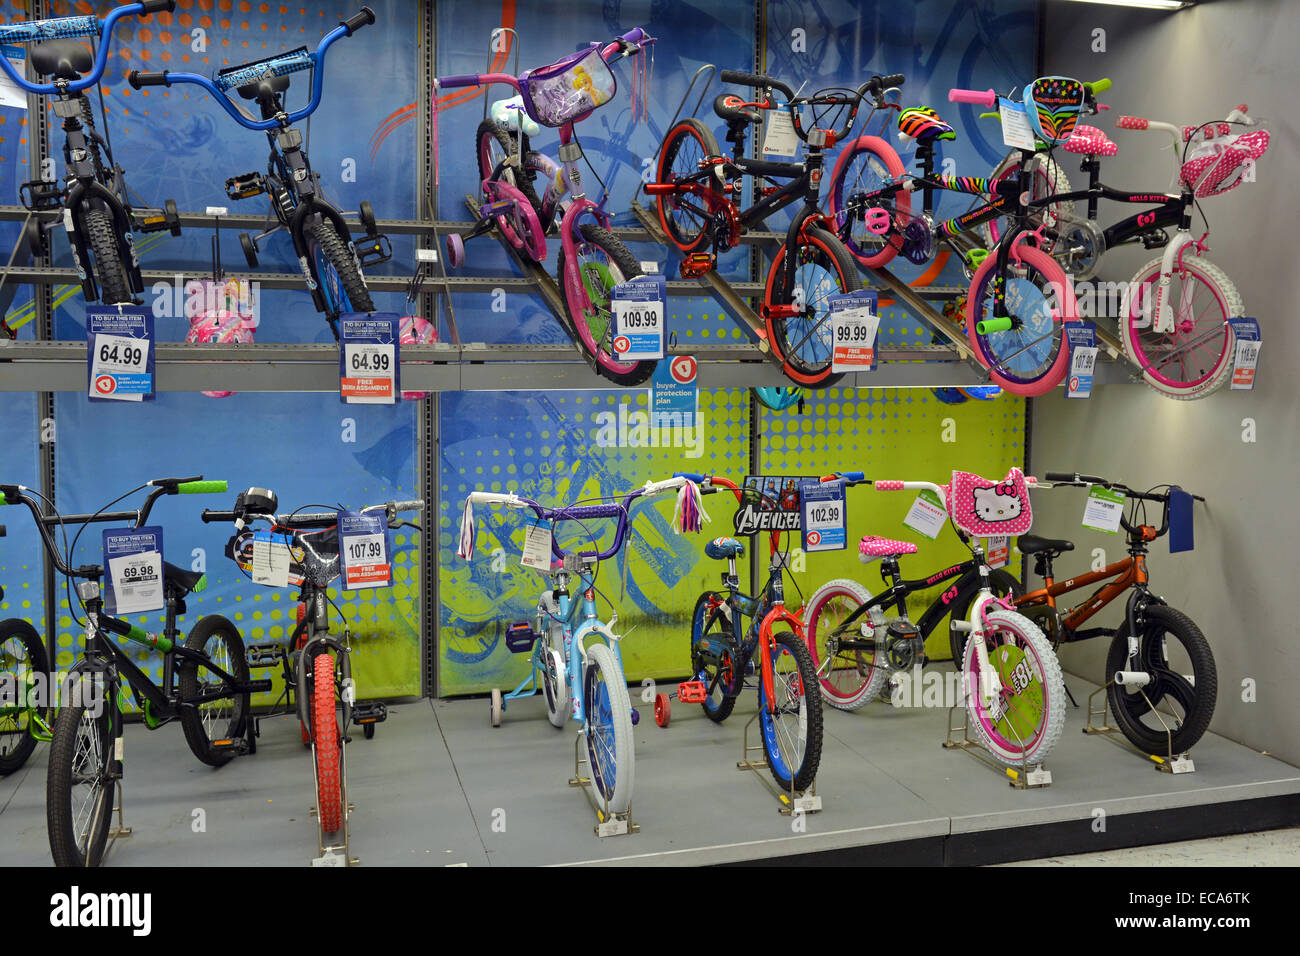 A display of new girl's bicycles at the Toys Are Us store in